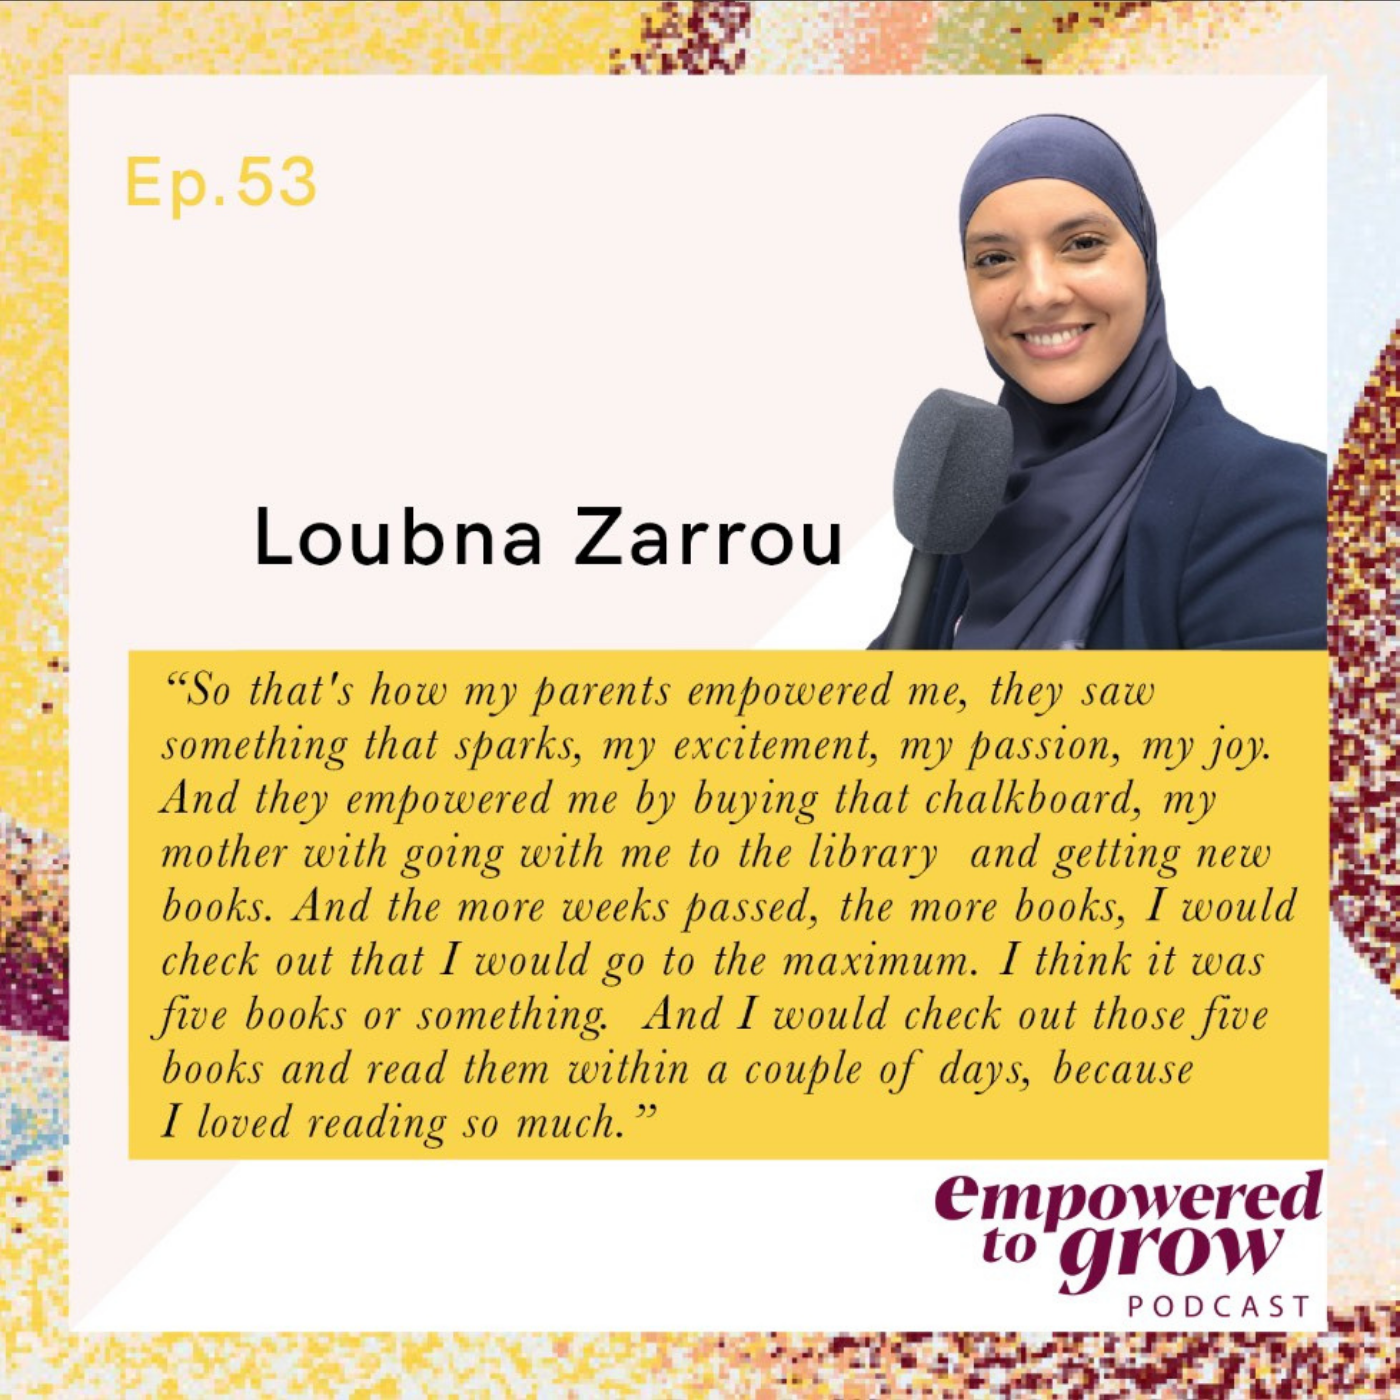 Ep.53 - Loubna Zarrou - The power of consistent learning